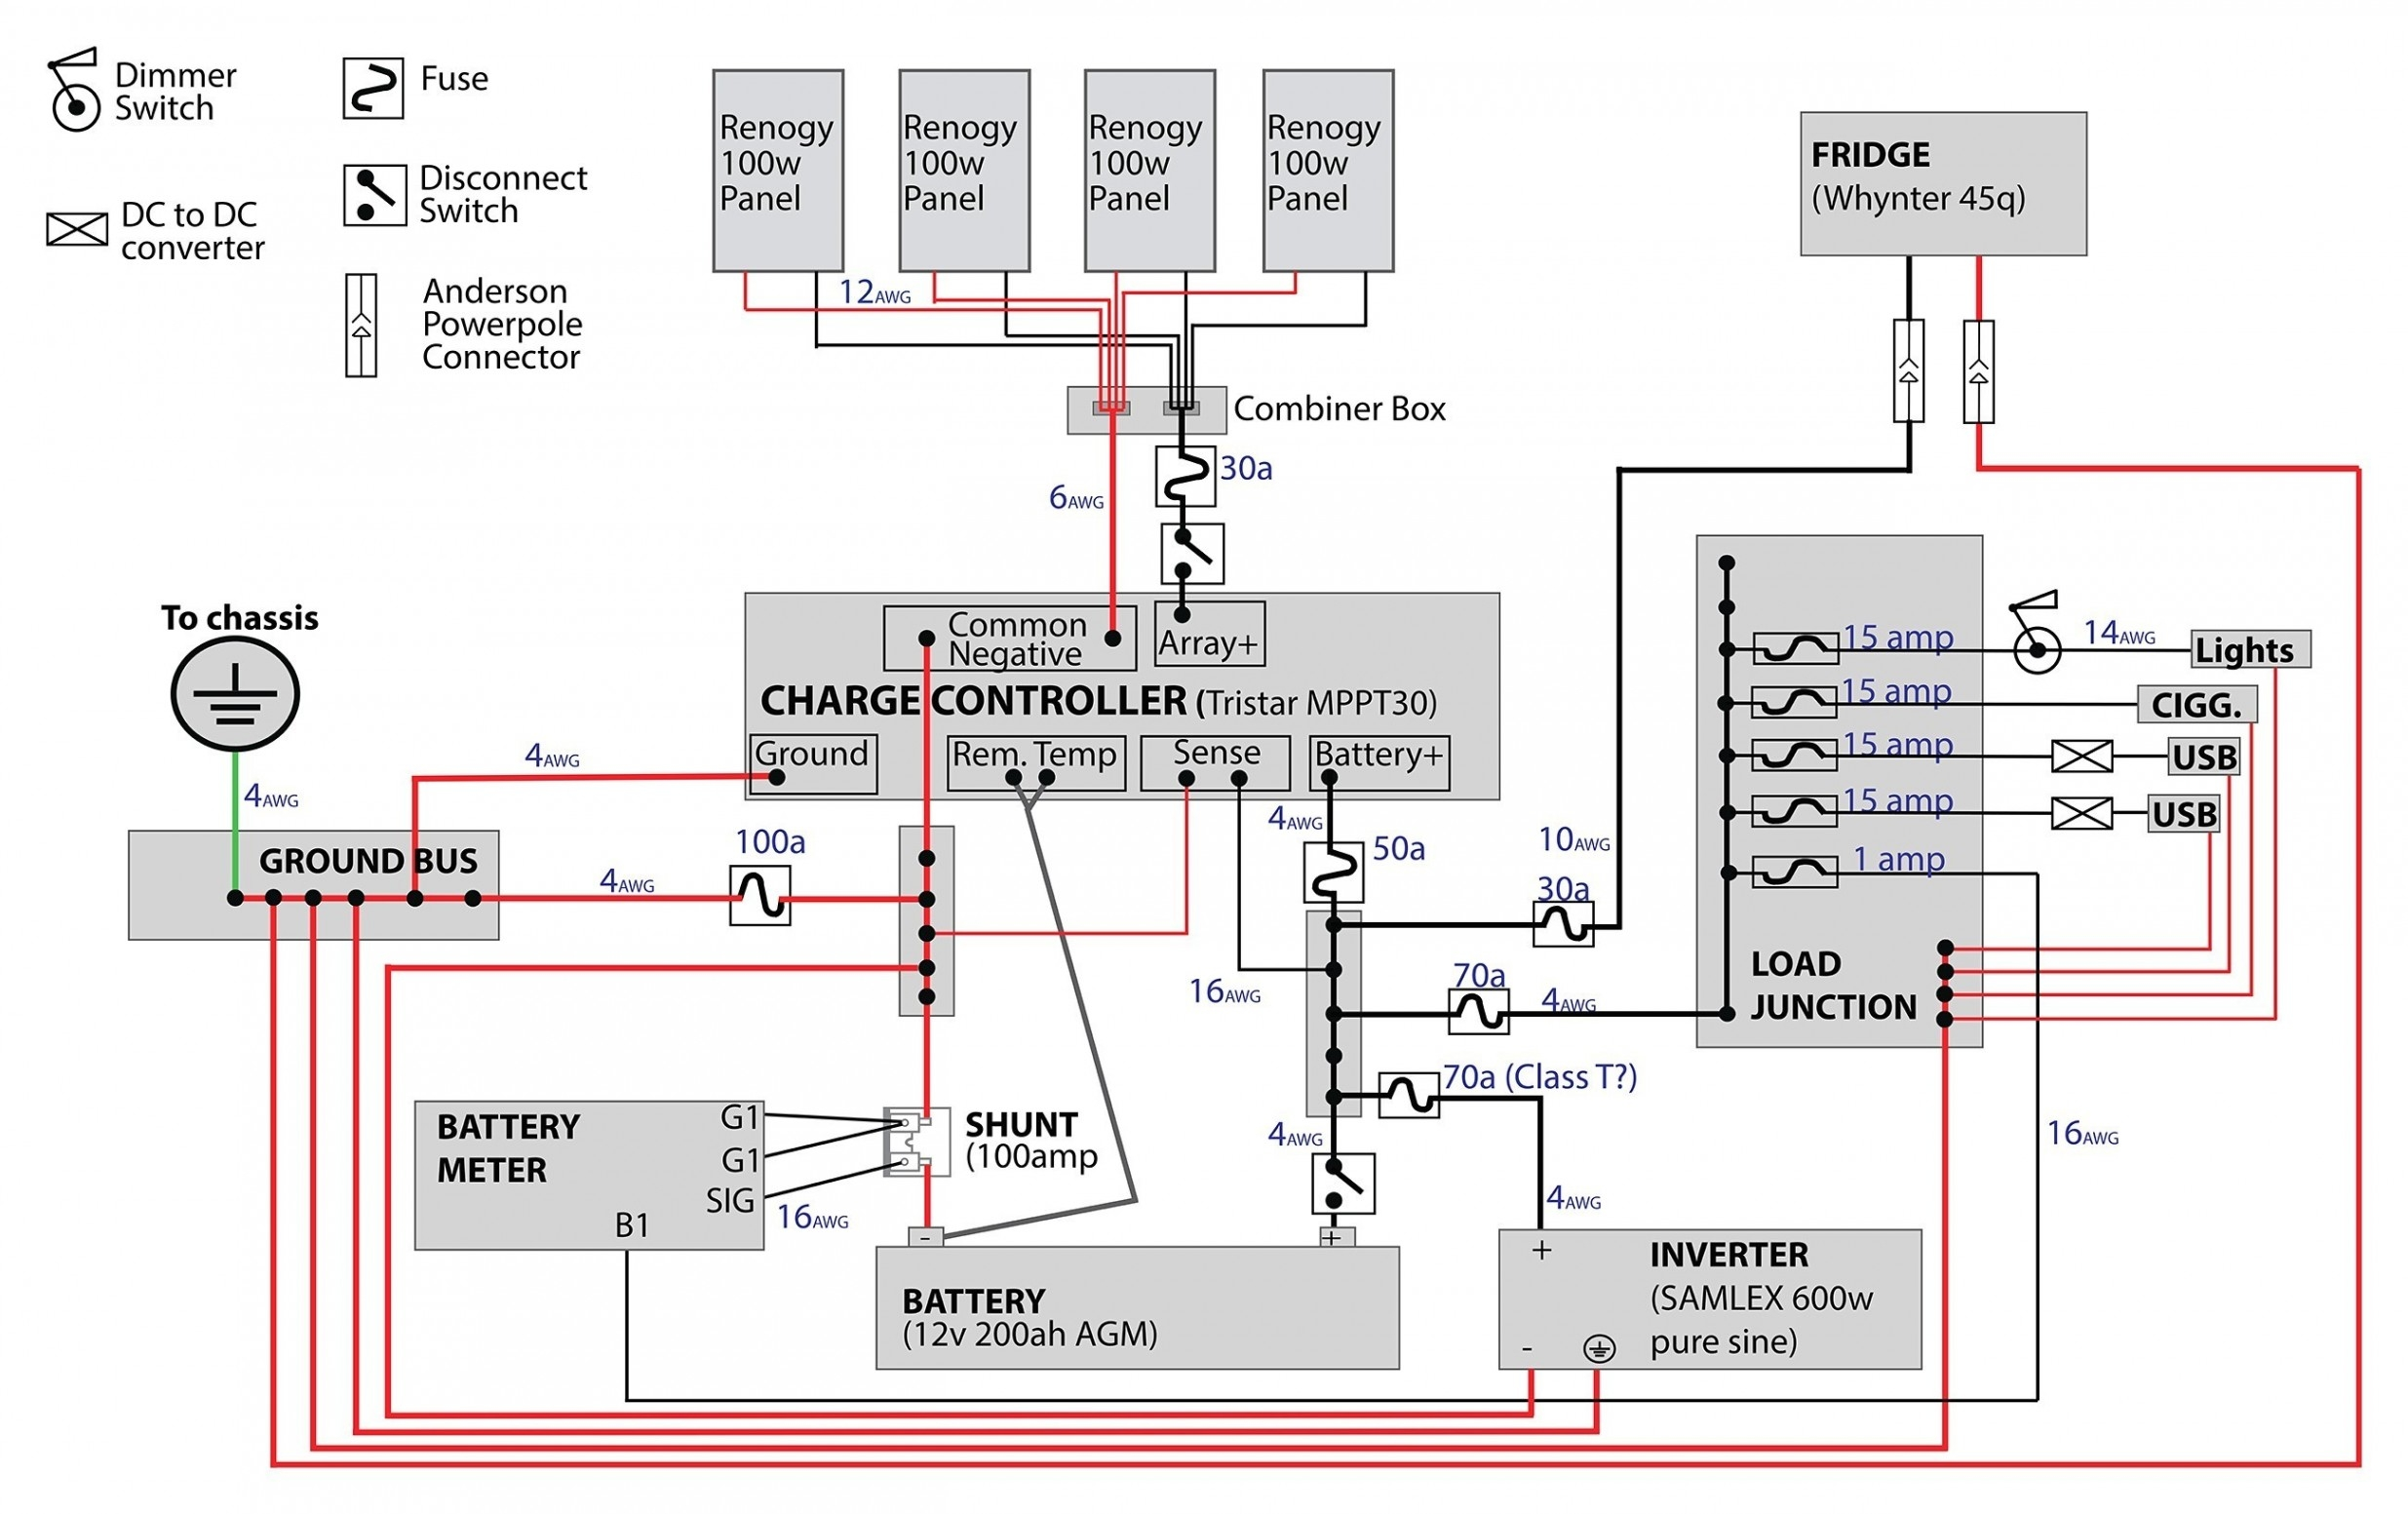 Bep Marine Battery Switch Wiring Diagram | Free Wiring Diagram on marinco wiring diagram, garmin wiring diagram, humminbird wiring diagram, bnc wiring diagram, bec wiring diagram, lowrance wiring diagram, bms wiring diagram, minn kota wiring diagram, bcm wiring diagram, simrad wiring diagram,